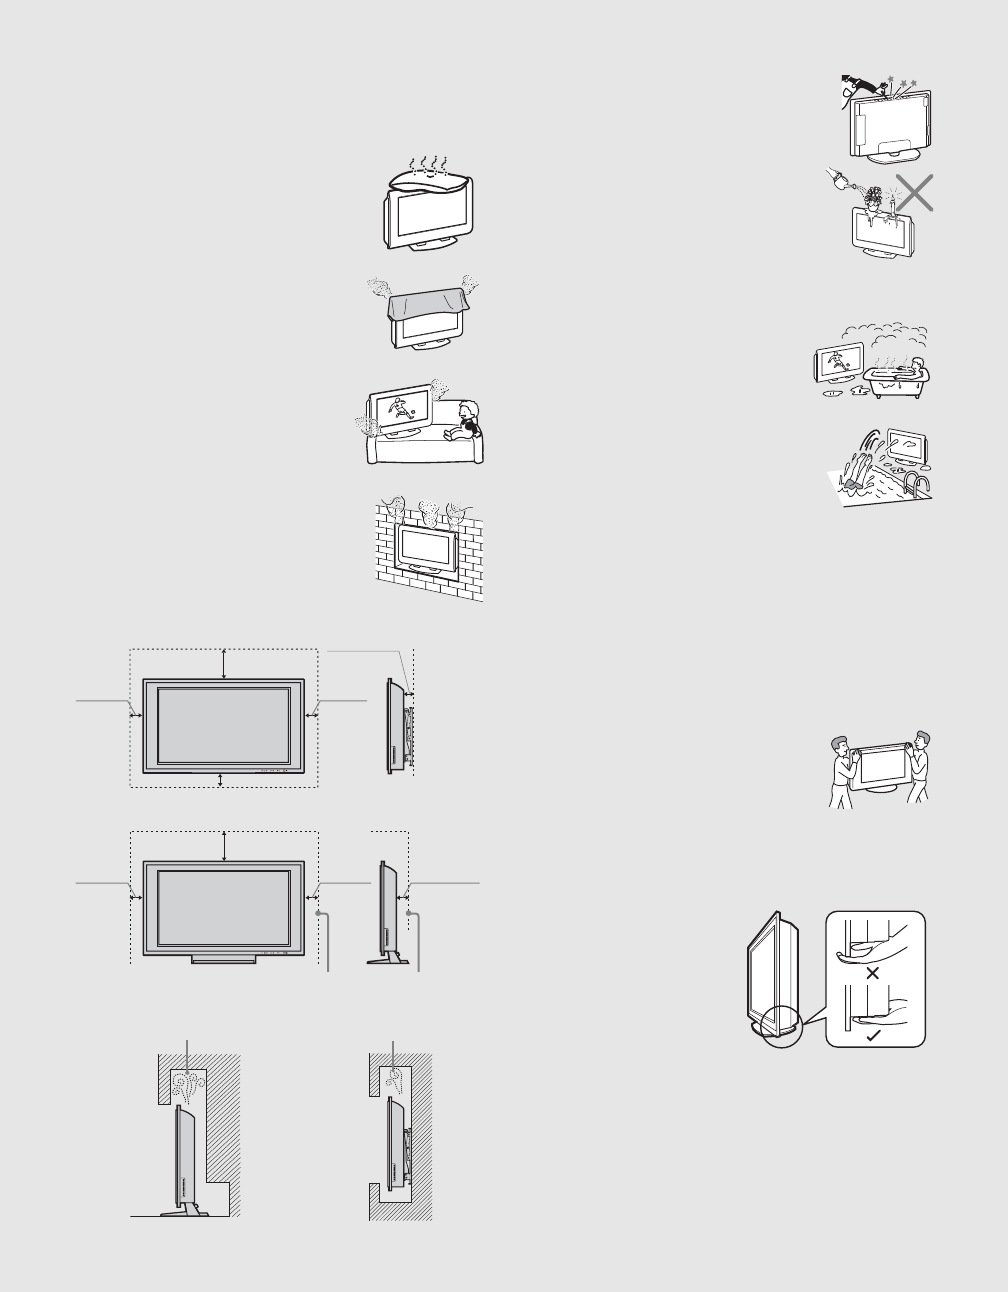 Page 6 of Sony Flat Panel Television KDL-40XBR2 User Guide